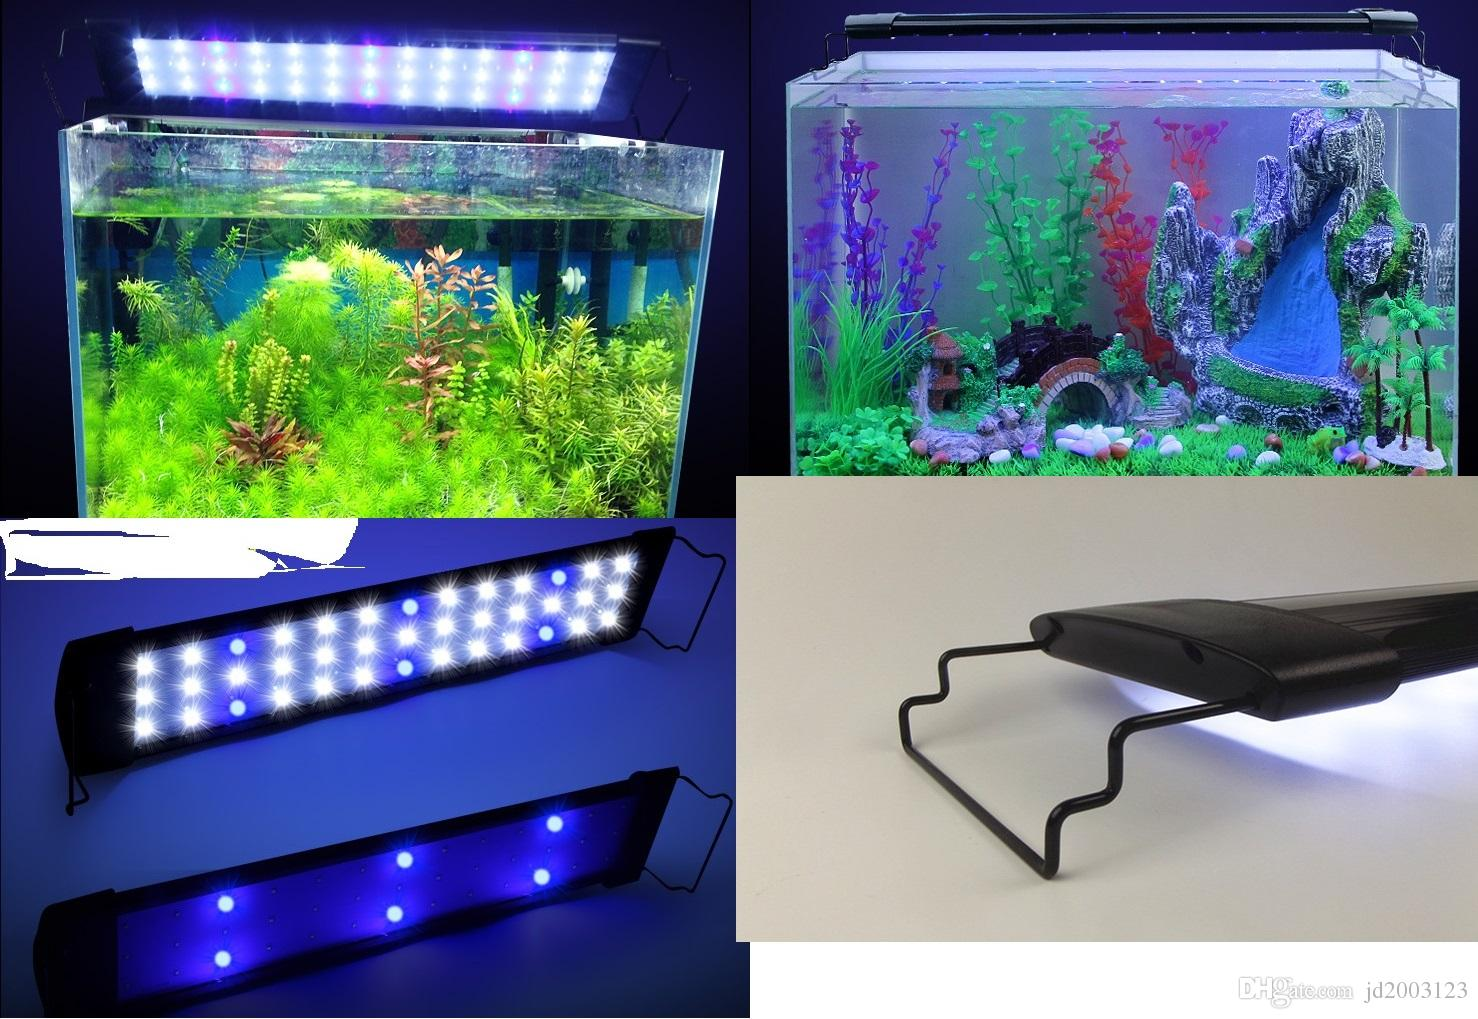 Aquarium fish tank in chennai - Aquarium Fish Tank Led Light